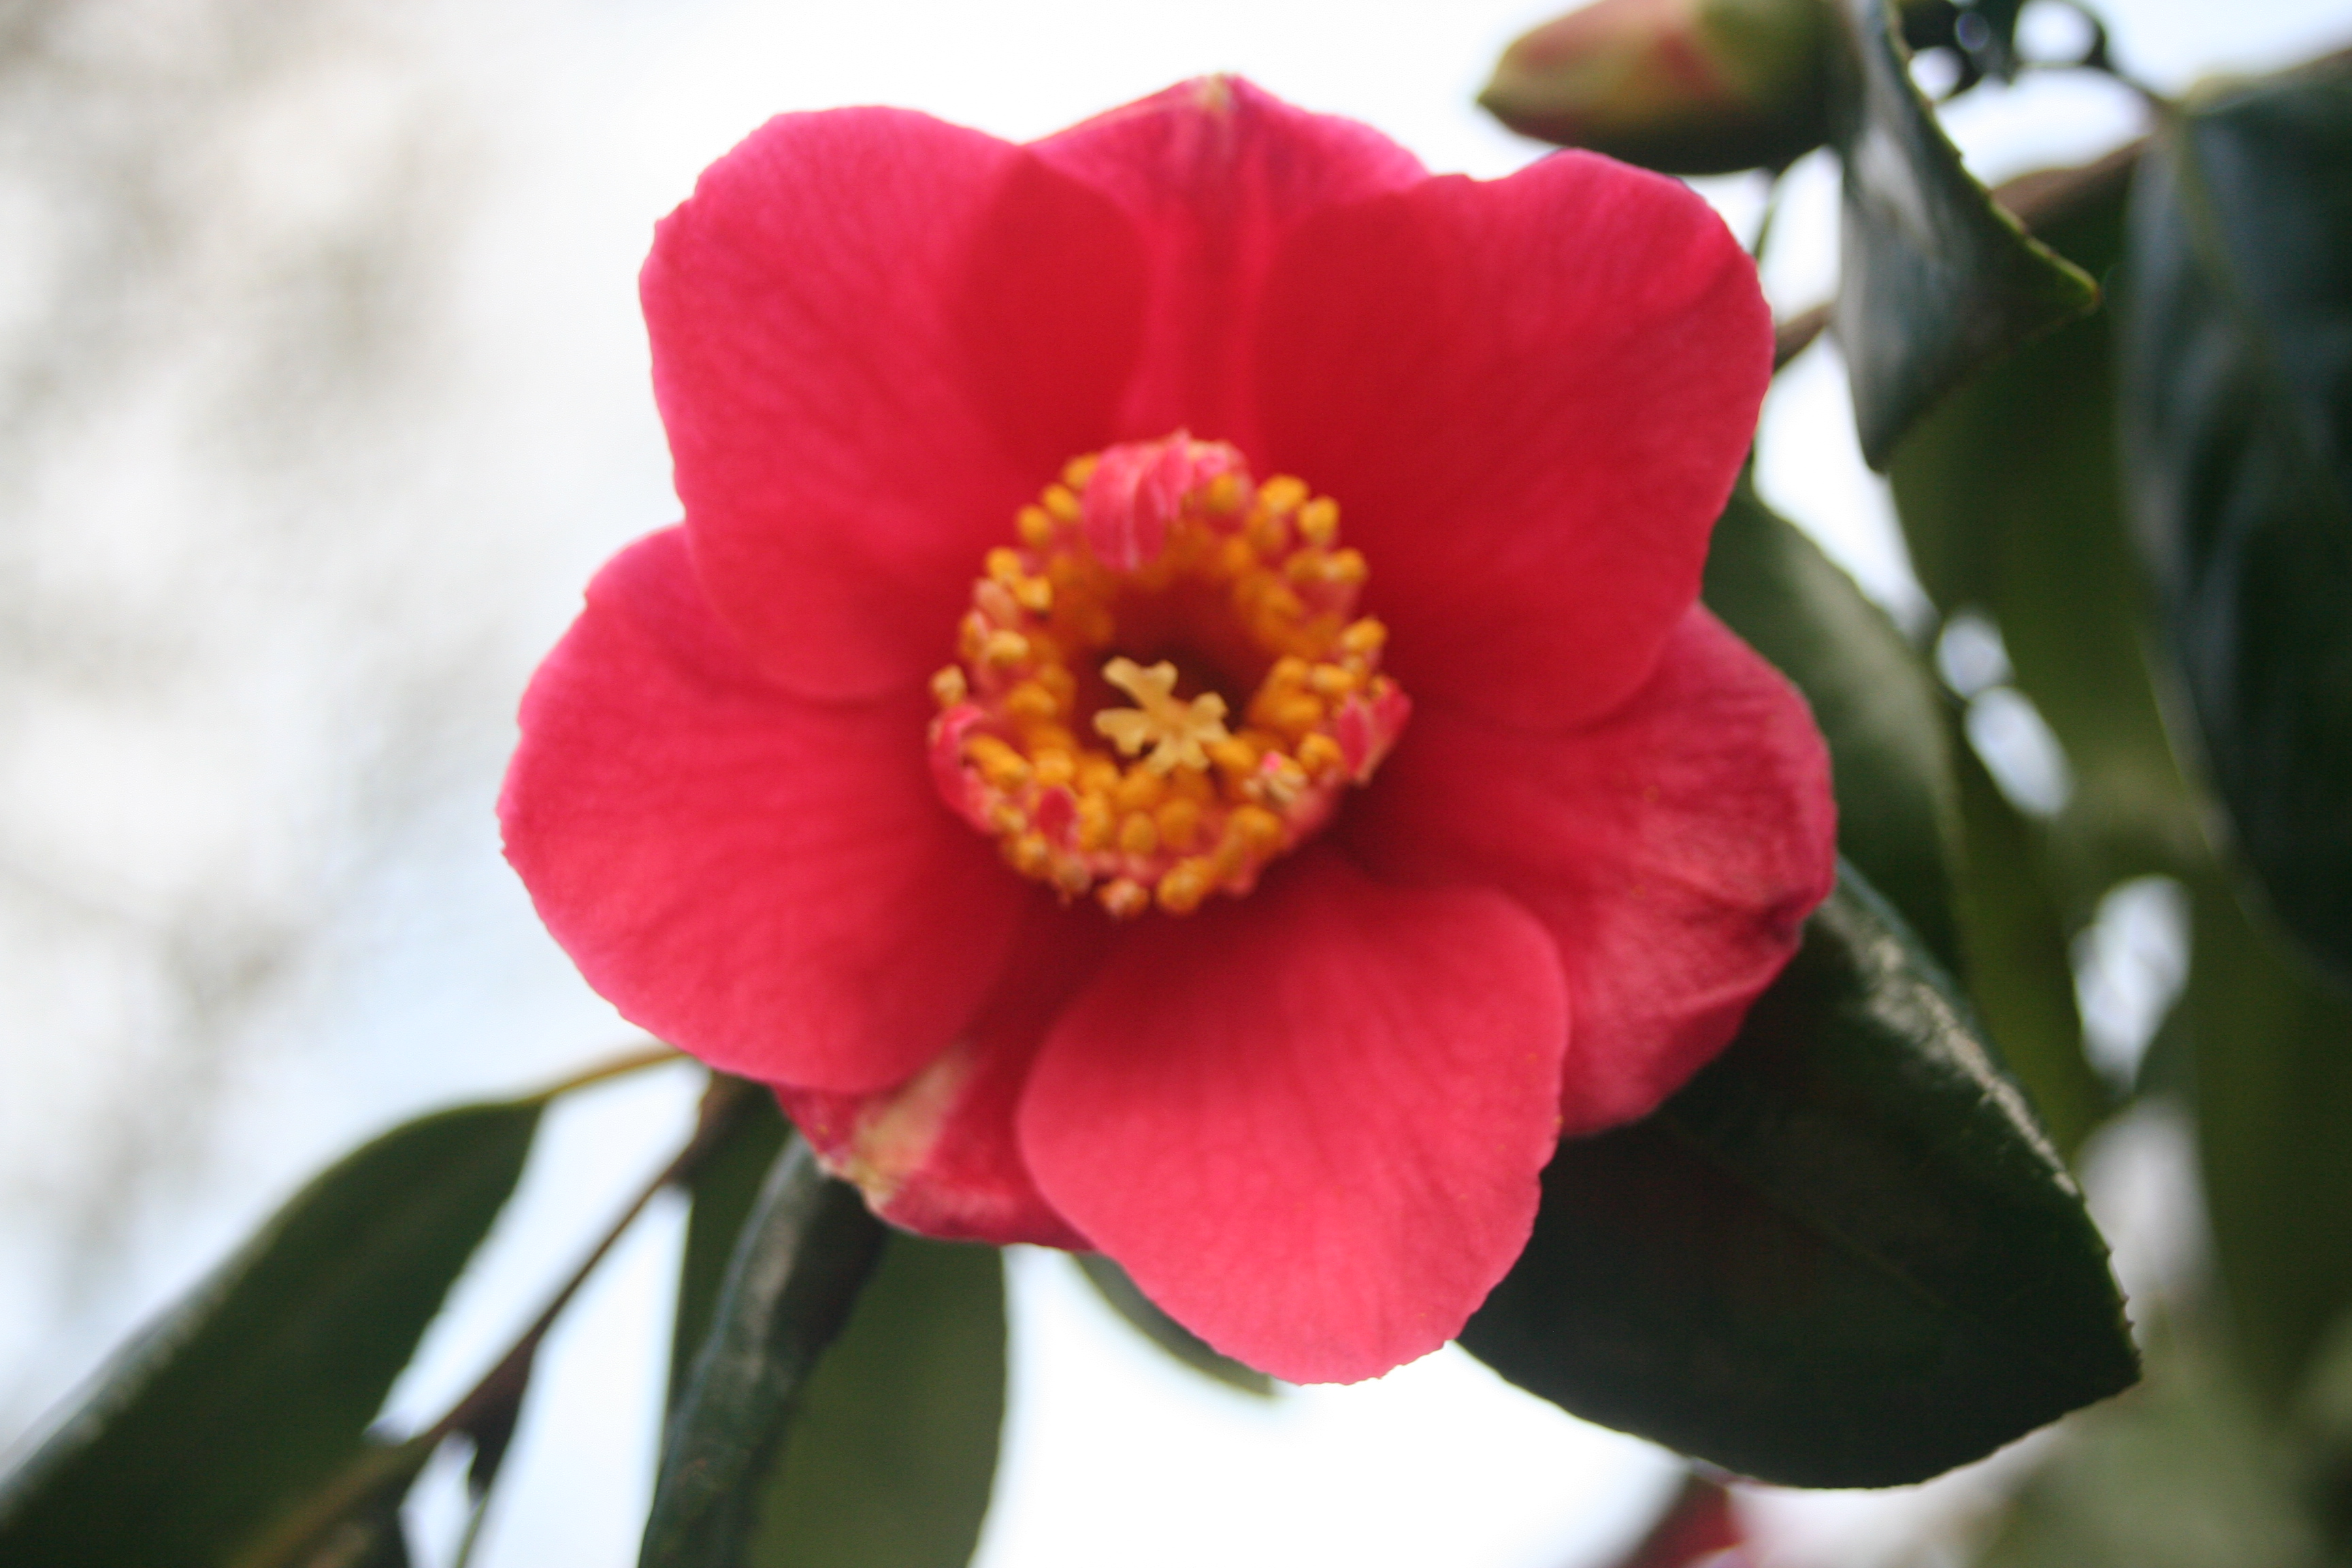 Camellia japonica subsp.japonica possibly (1)